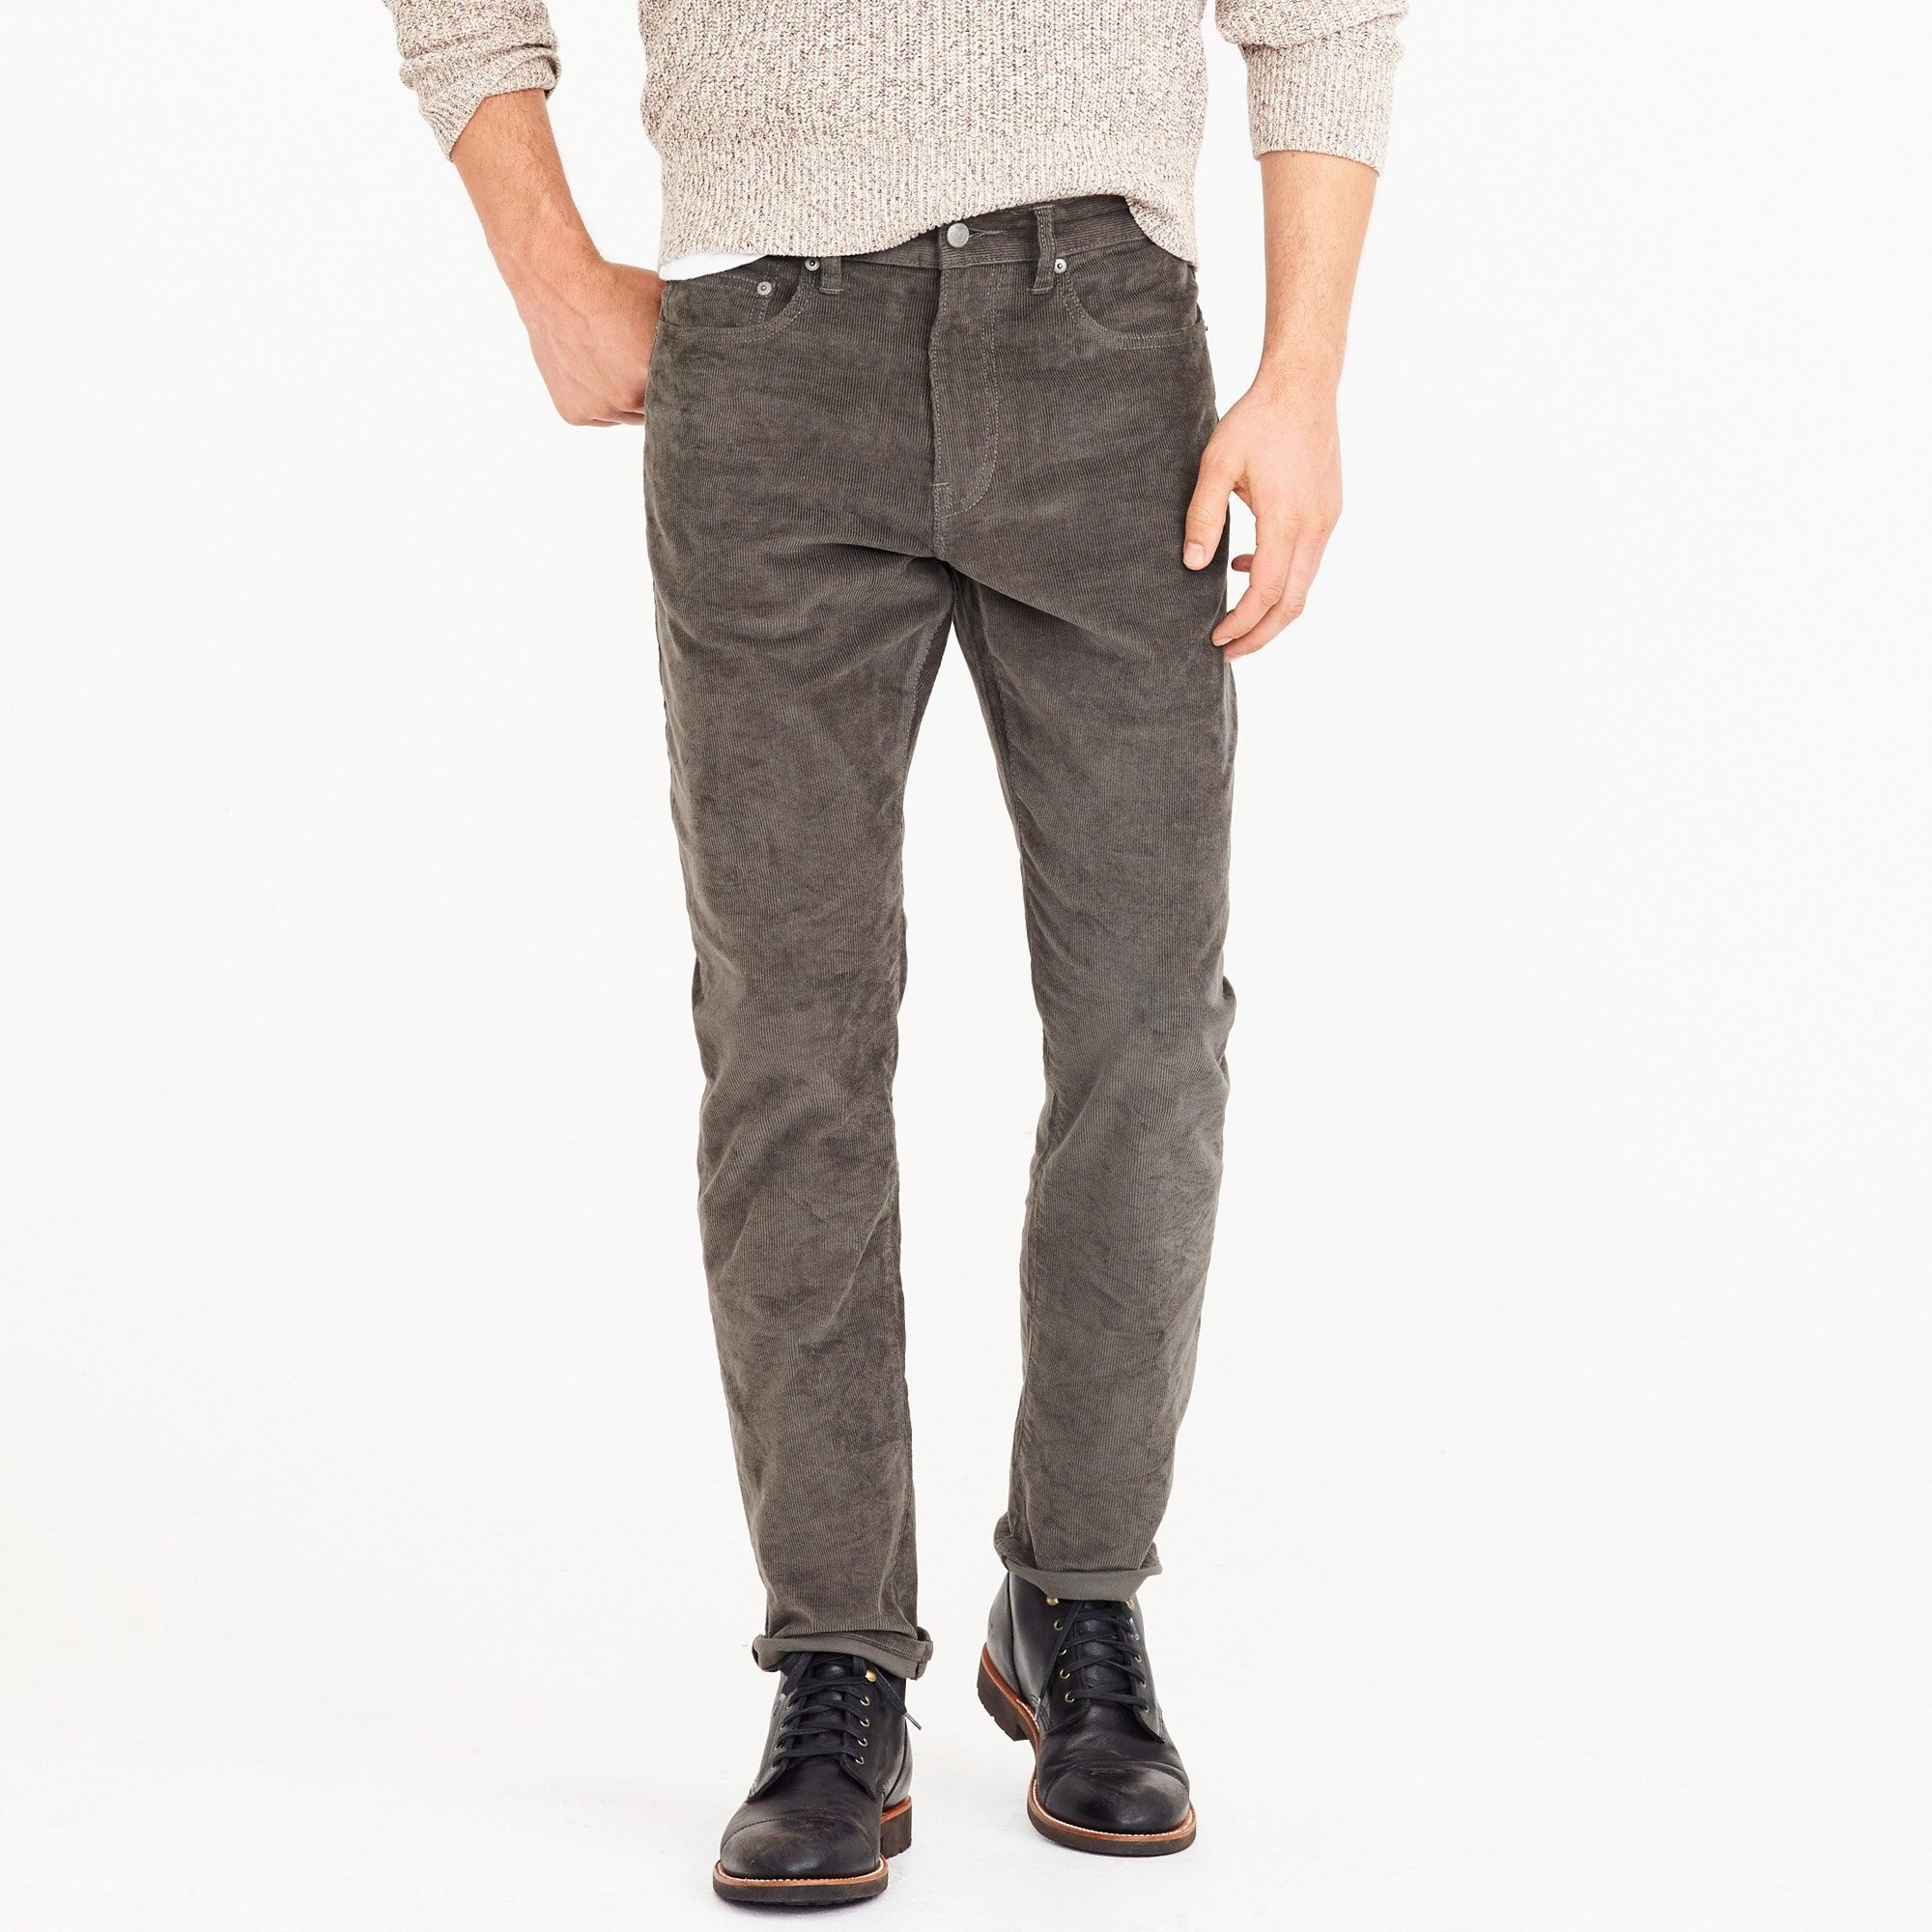 1040 athletic-fit pant in corduroy : men 1040 athletic